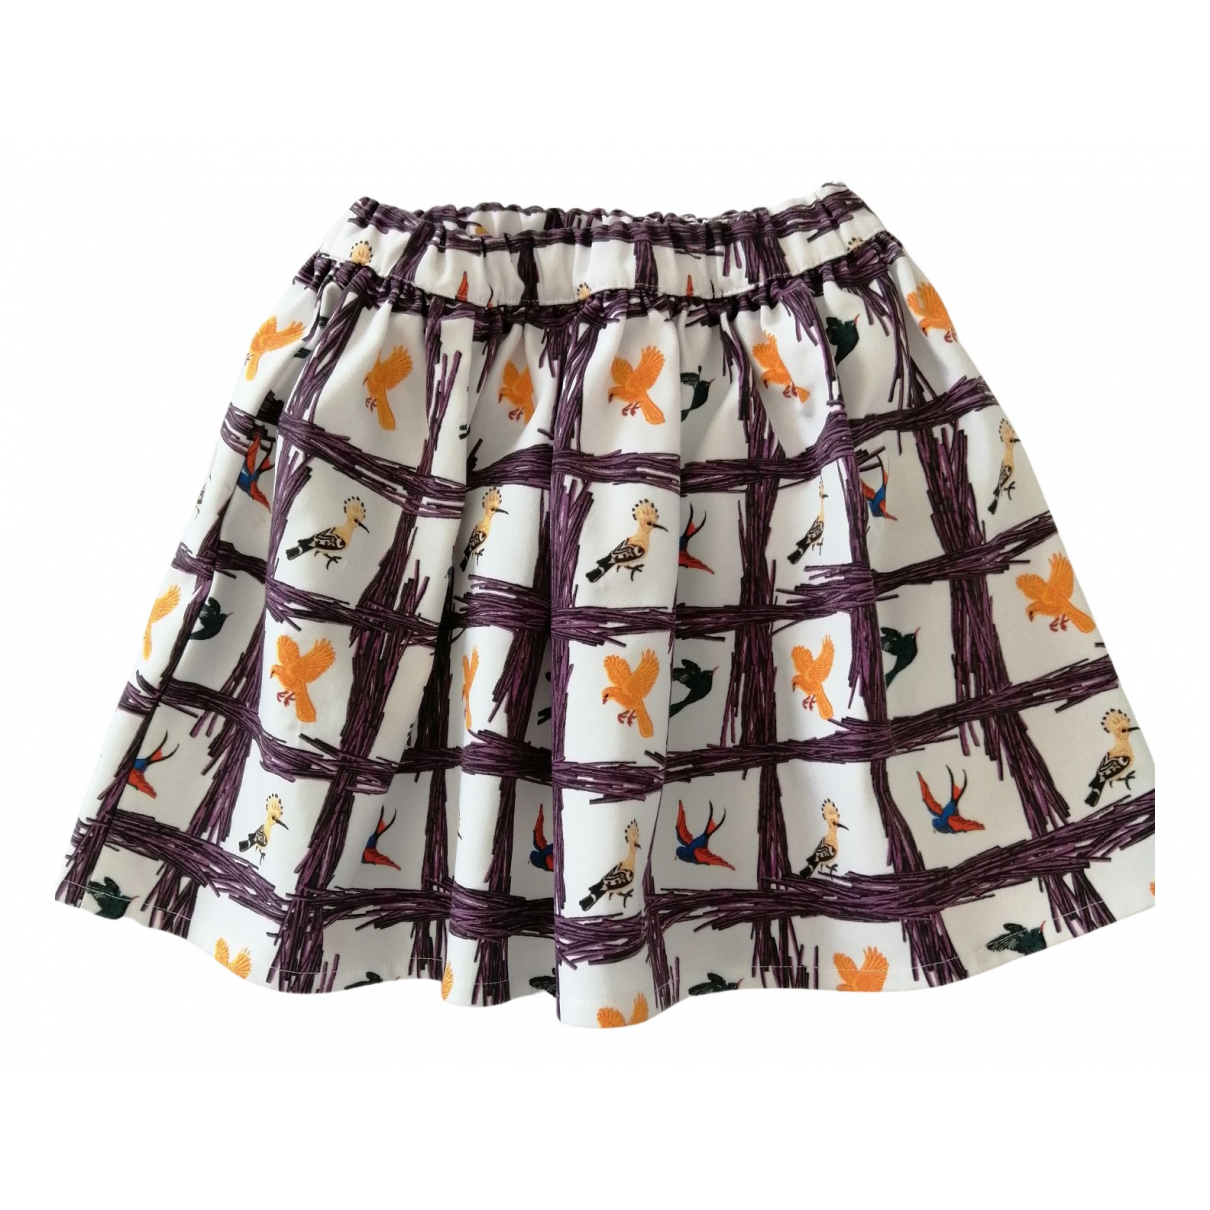 Stella Jean N White Cotton skirt for Kids 4 years - up to 102cm FR